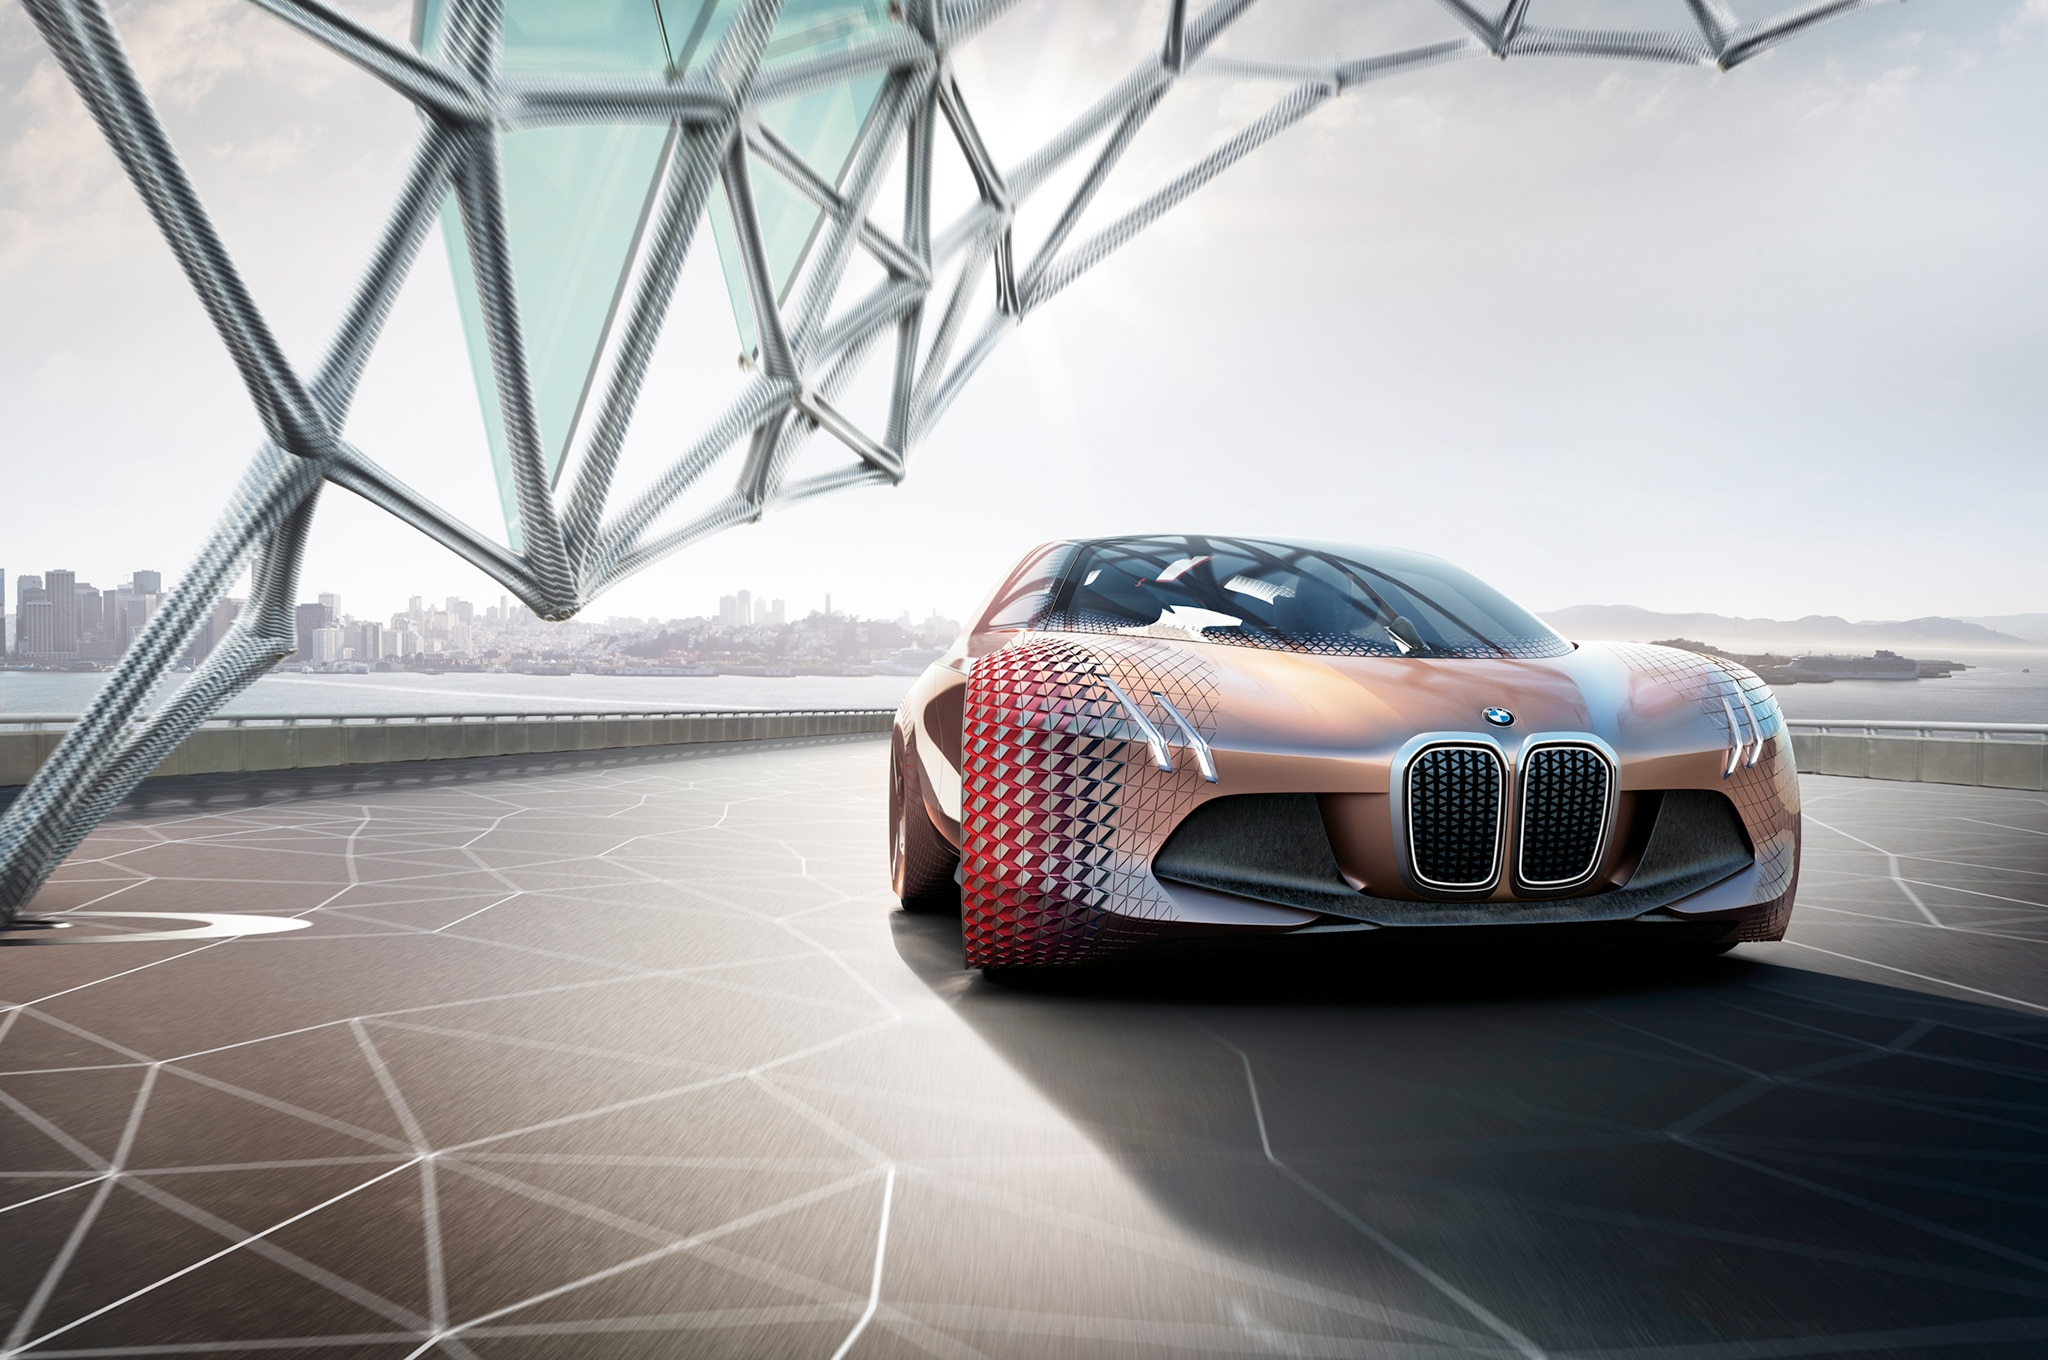 bmw vision next 100 concept headlines centenary celebration in munich automobile magazine. Black Bedroom Furniture Sets. Home Design Ideas